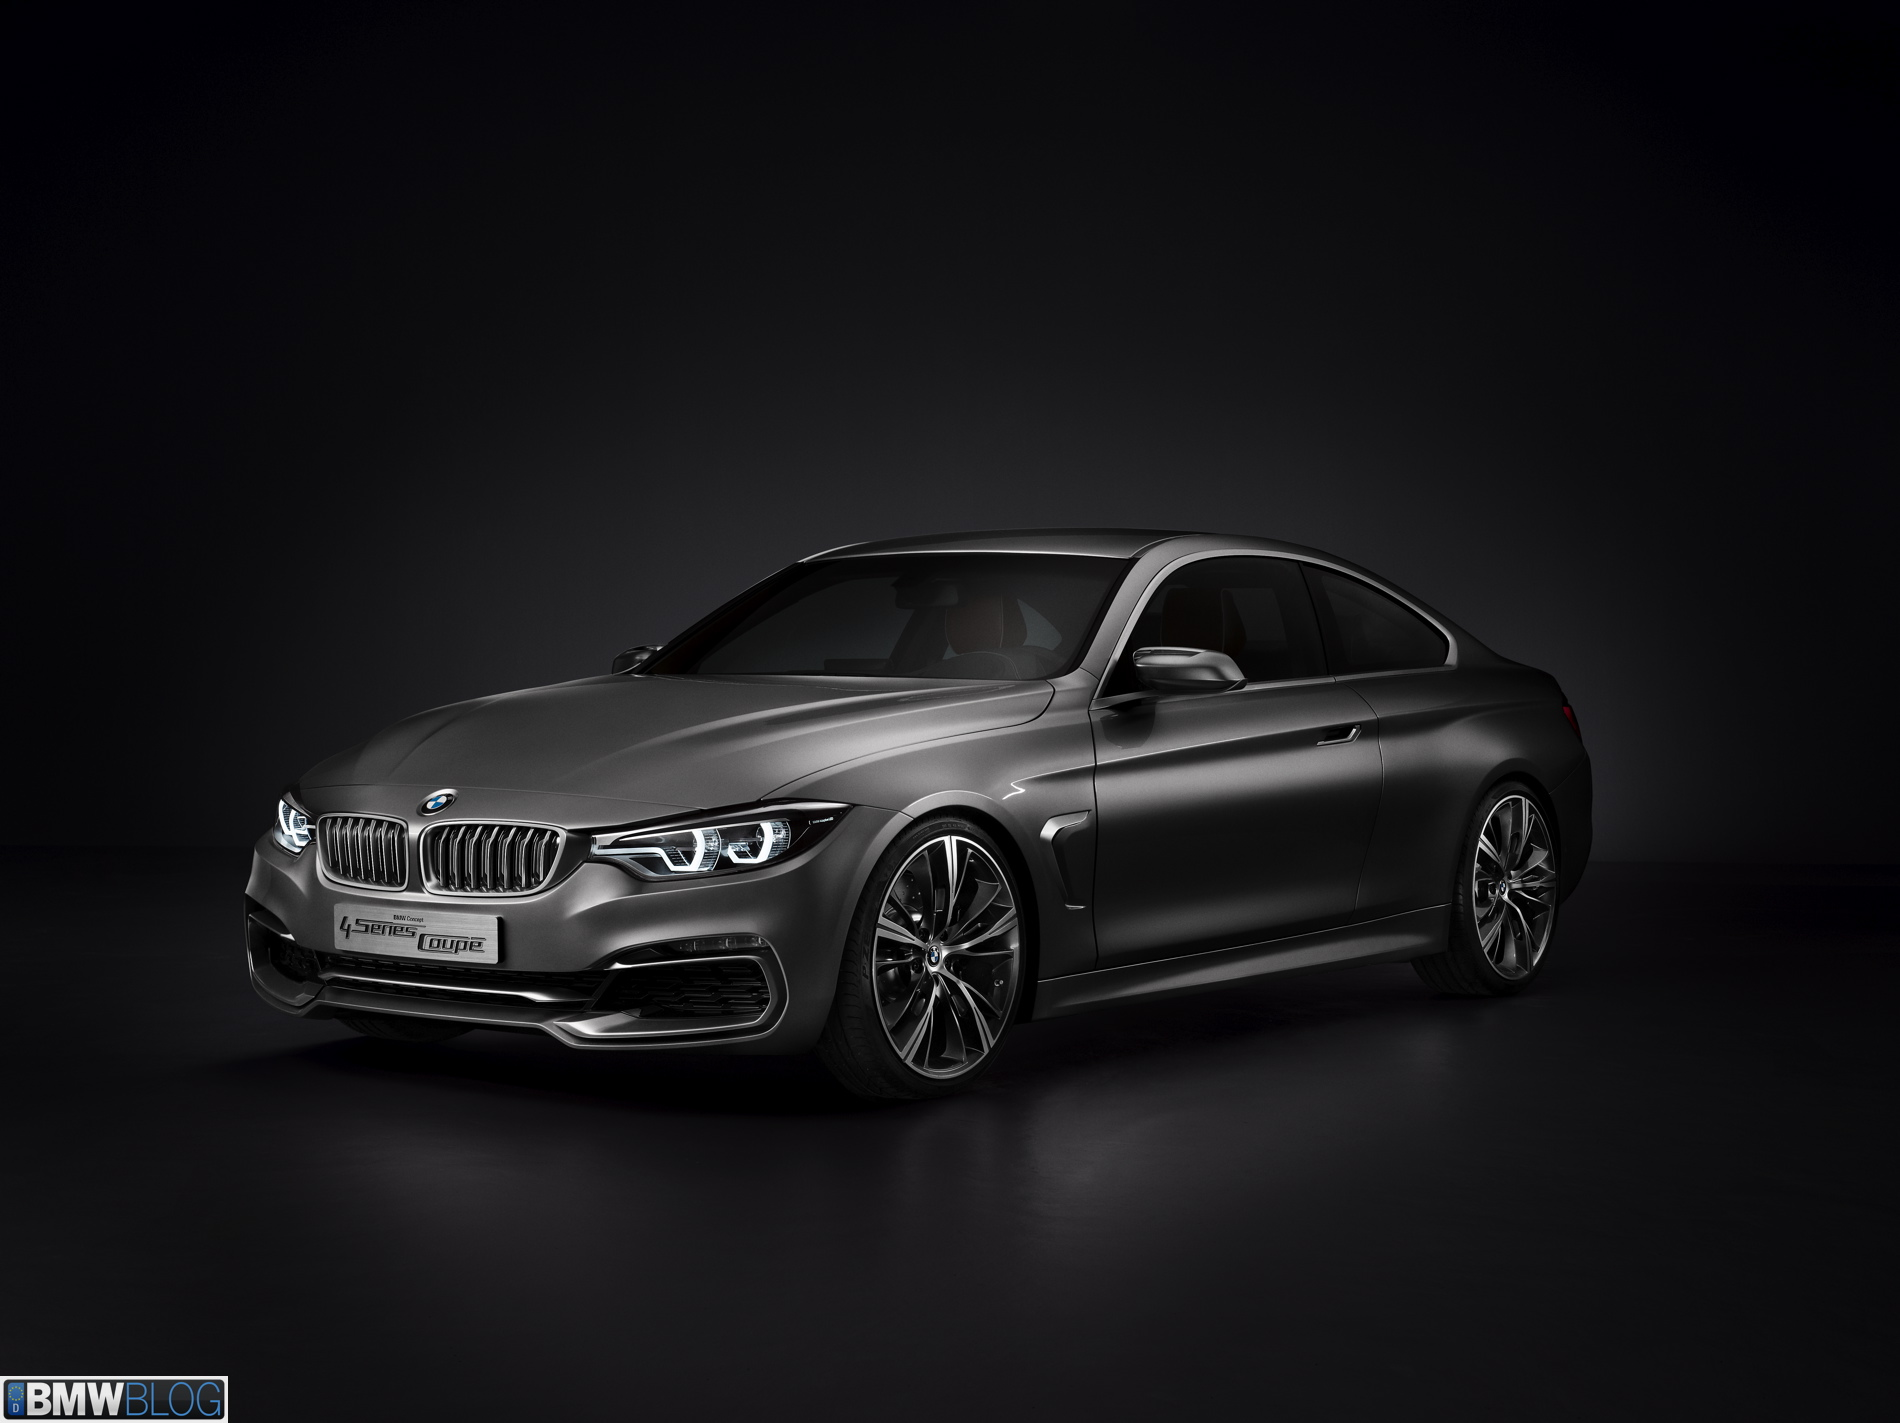 BMW 4 series images 011